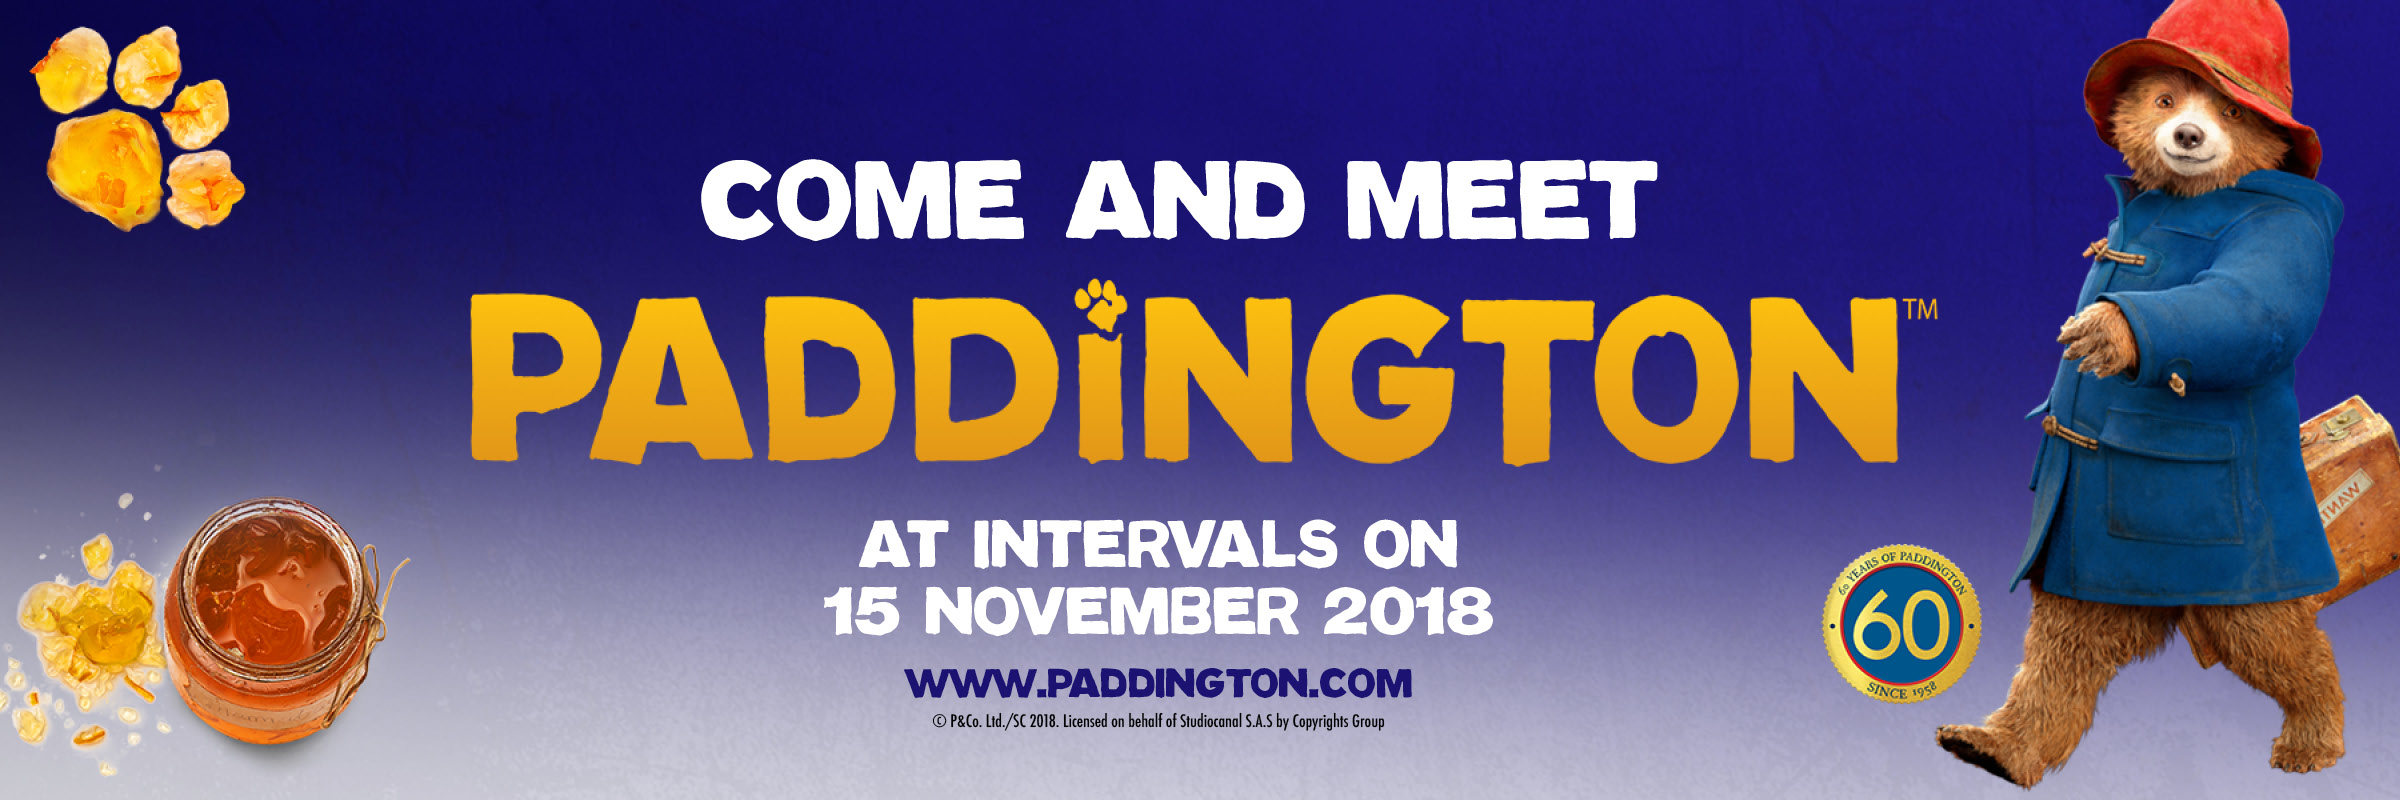 Come and Meet Paddington!